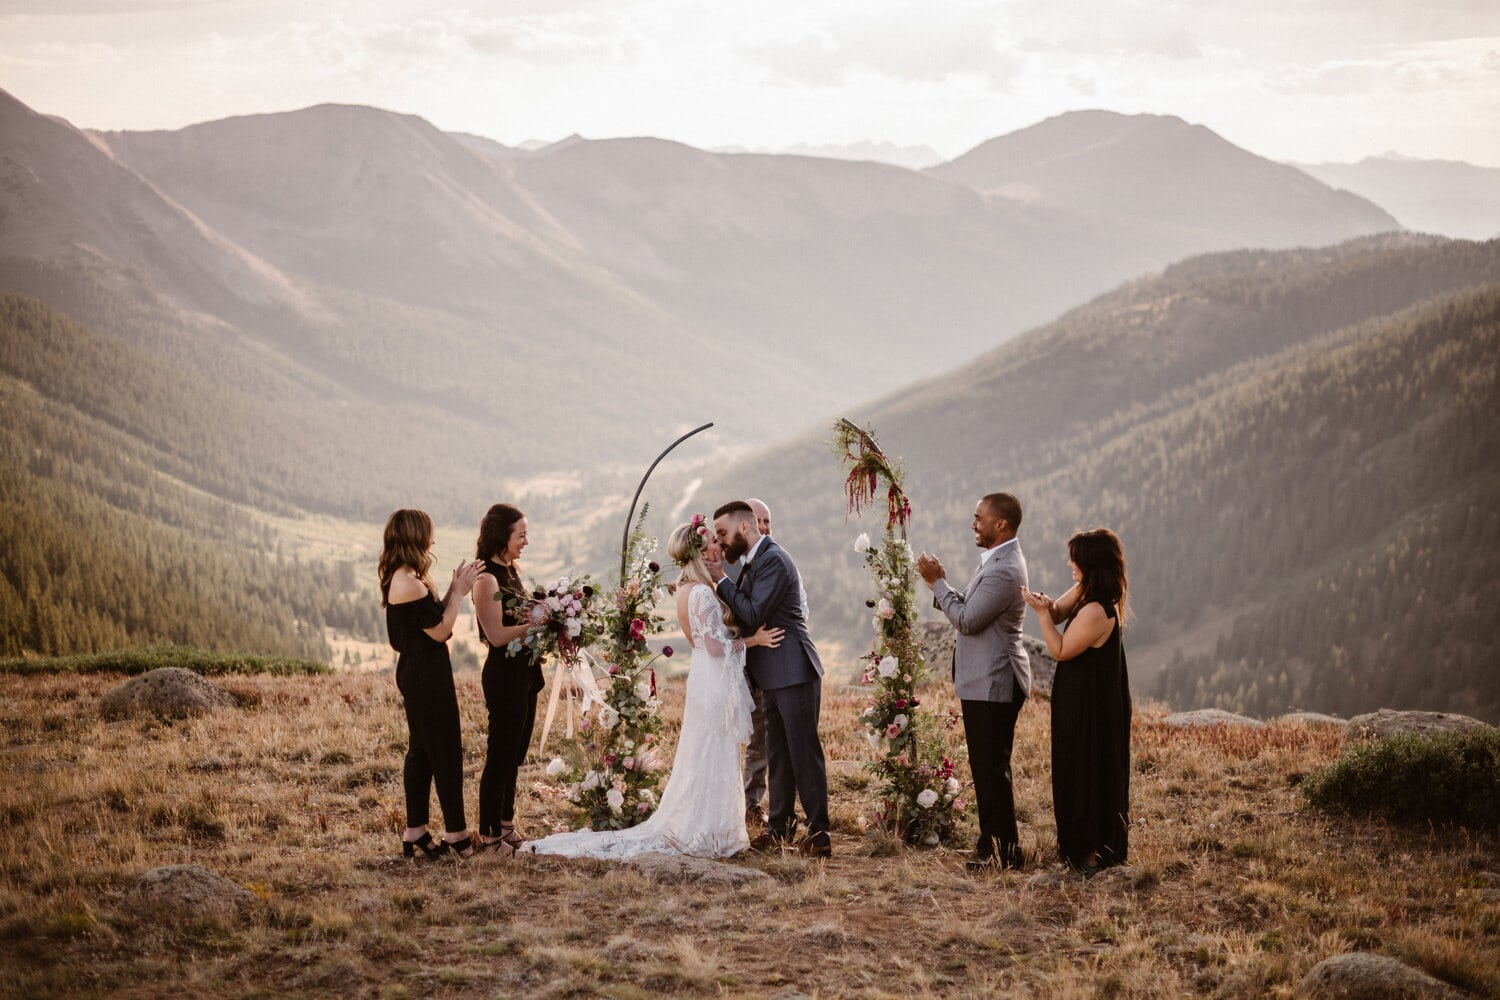 Bride and groom kiss in front of the alter during their ceremony while friends and family stand by their side.